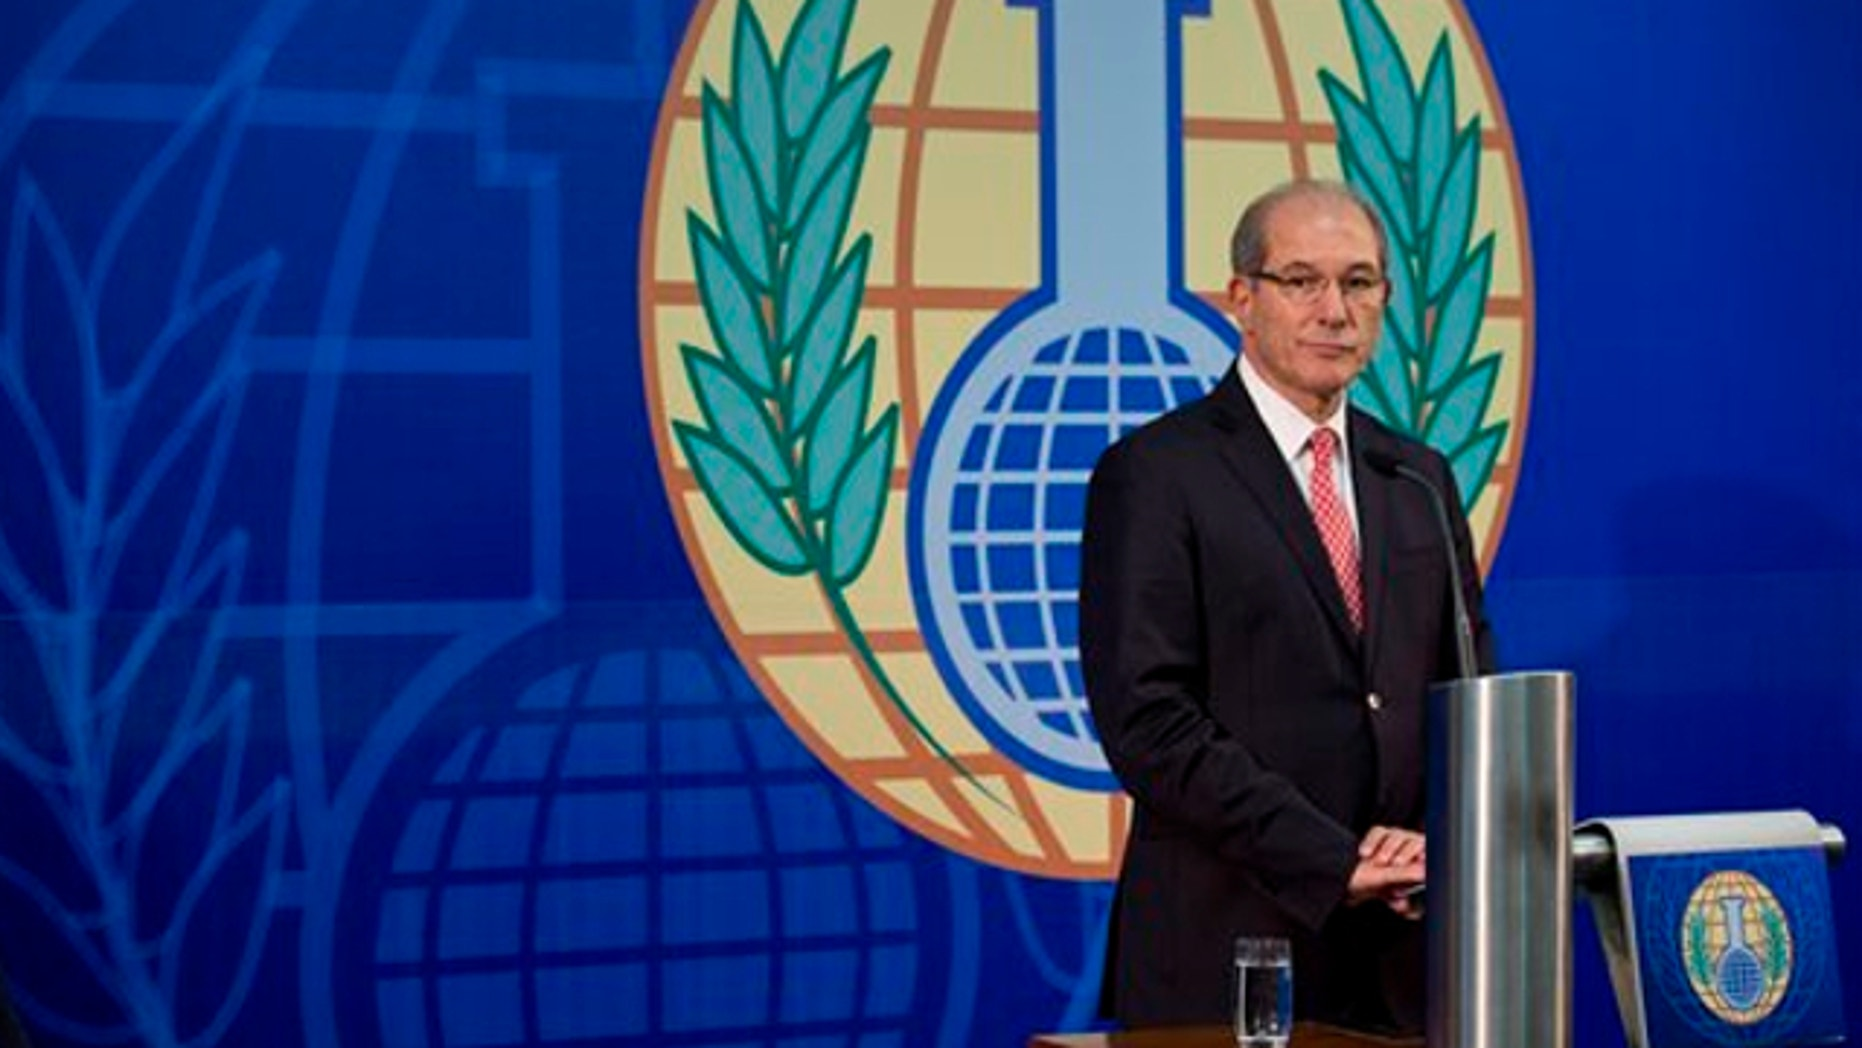 Oct. 9, 2013: Director General Ahmet Uzumcu of the Organisation for the Prohibition of Chemical Weapons, OPCW, gives an update on the the chemical watchdog's verification and destruction mission in Syria during a press conference in The Hague, Netherlands.